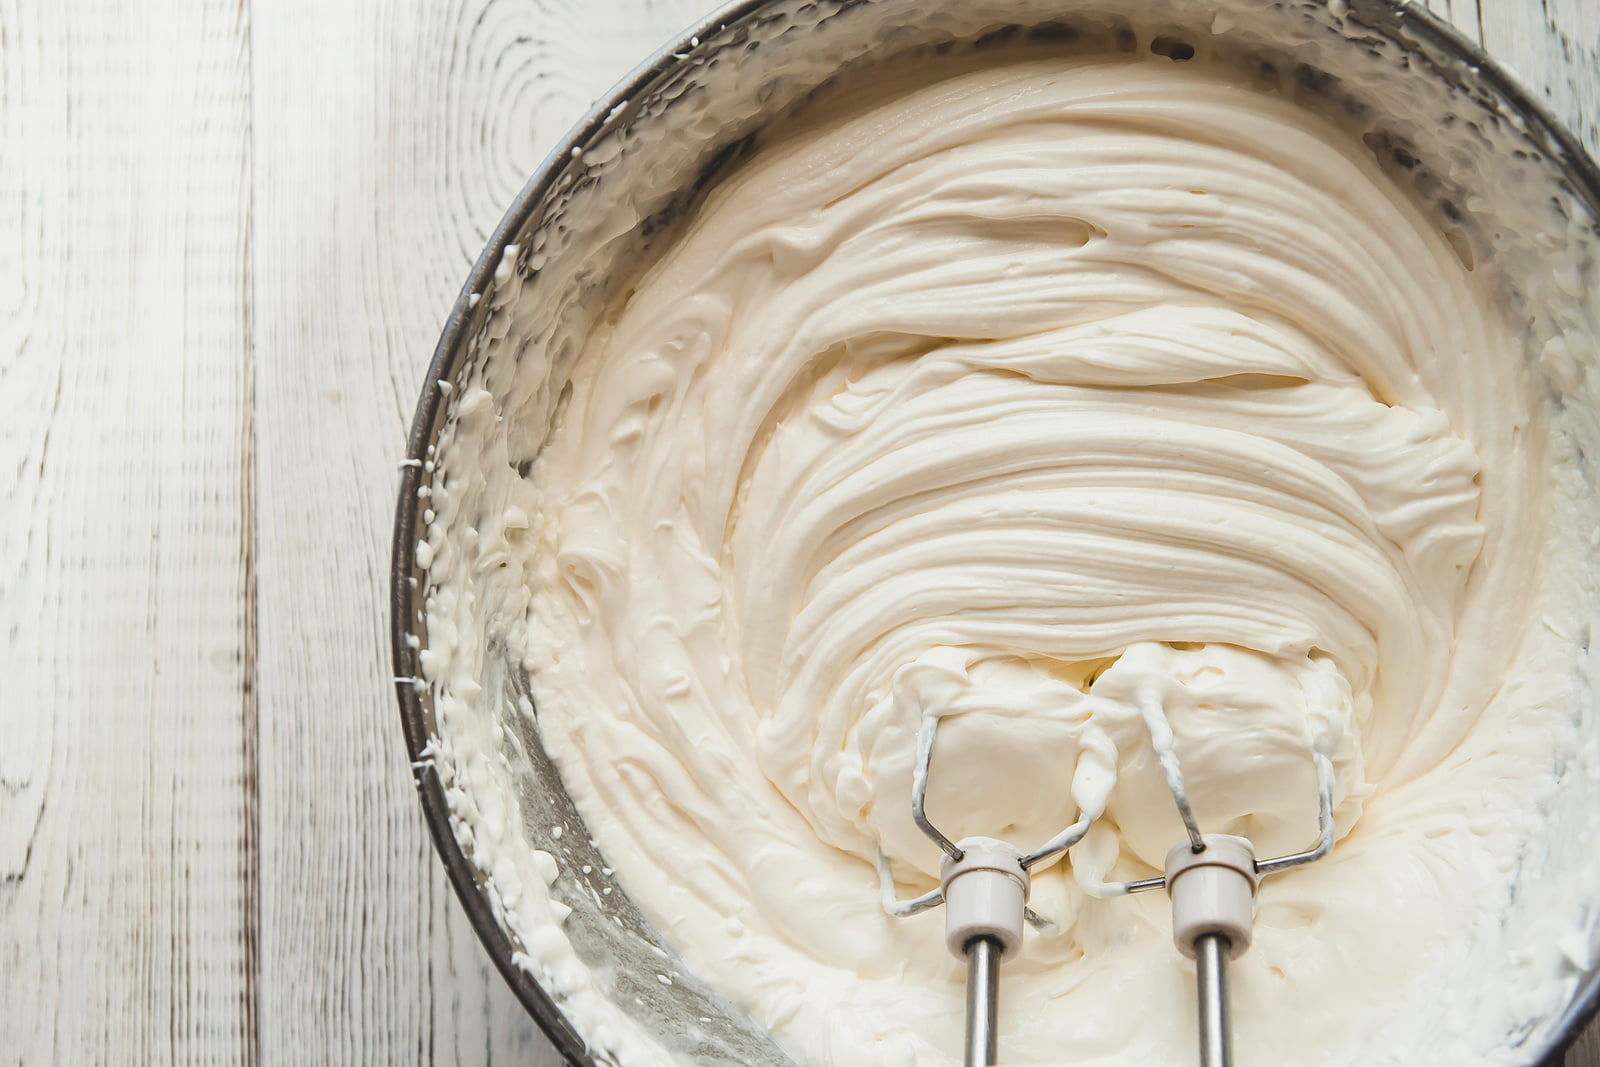 This sugar-free whipped cream recipe has only 2 ingredients